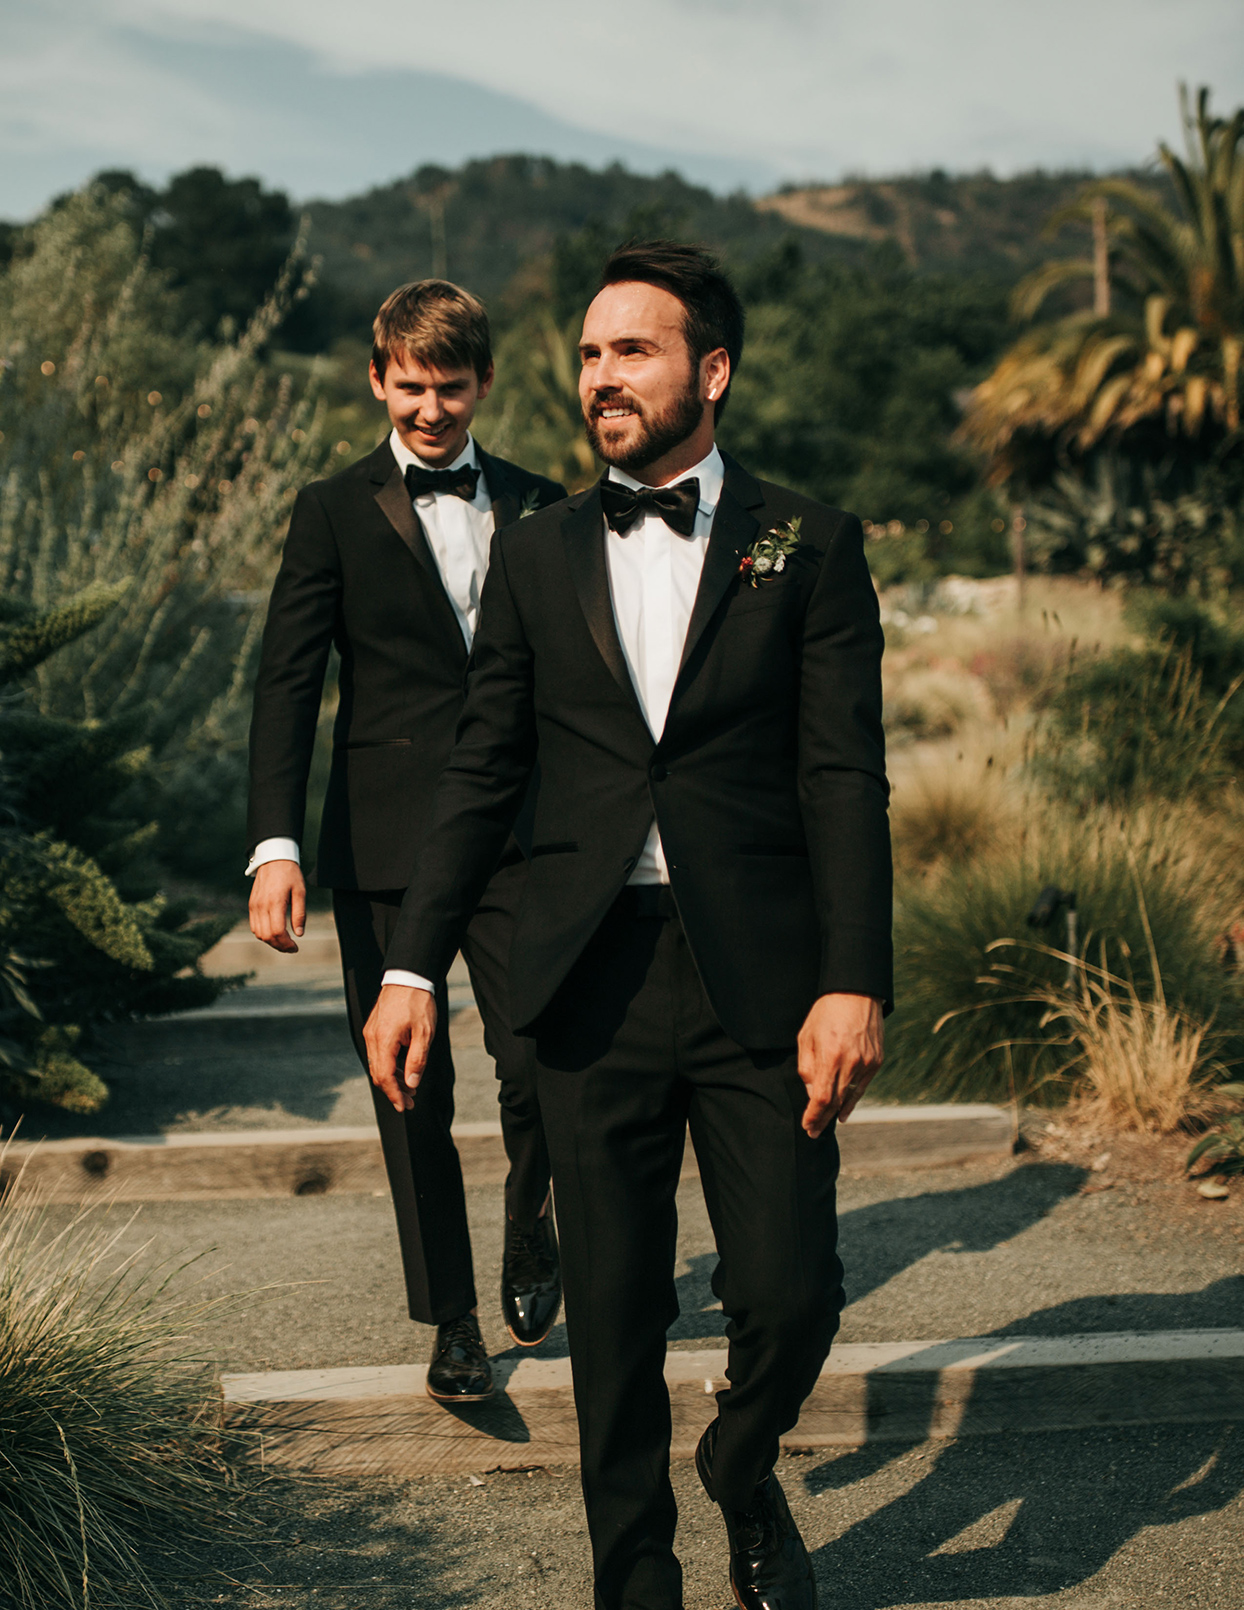 Two Grooms in Tuxes